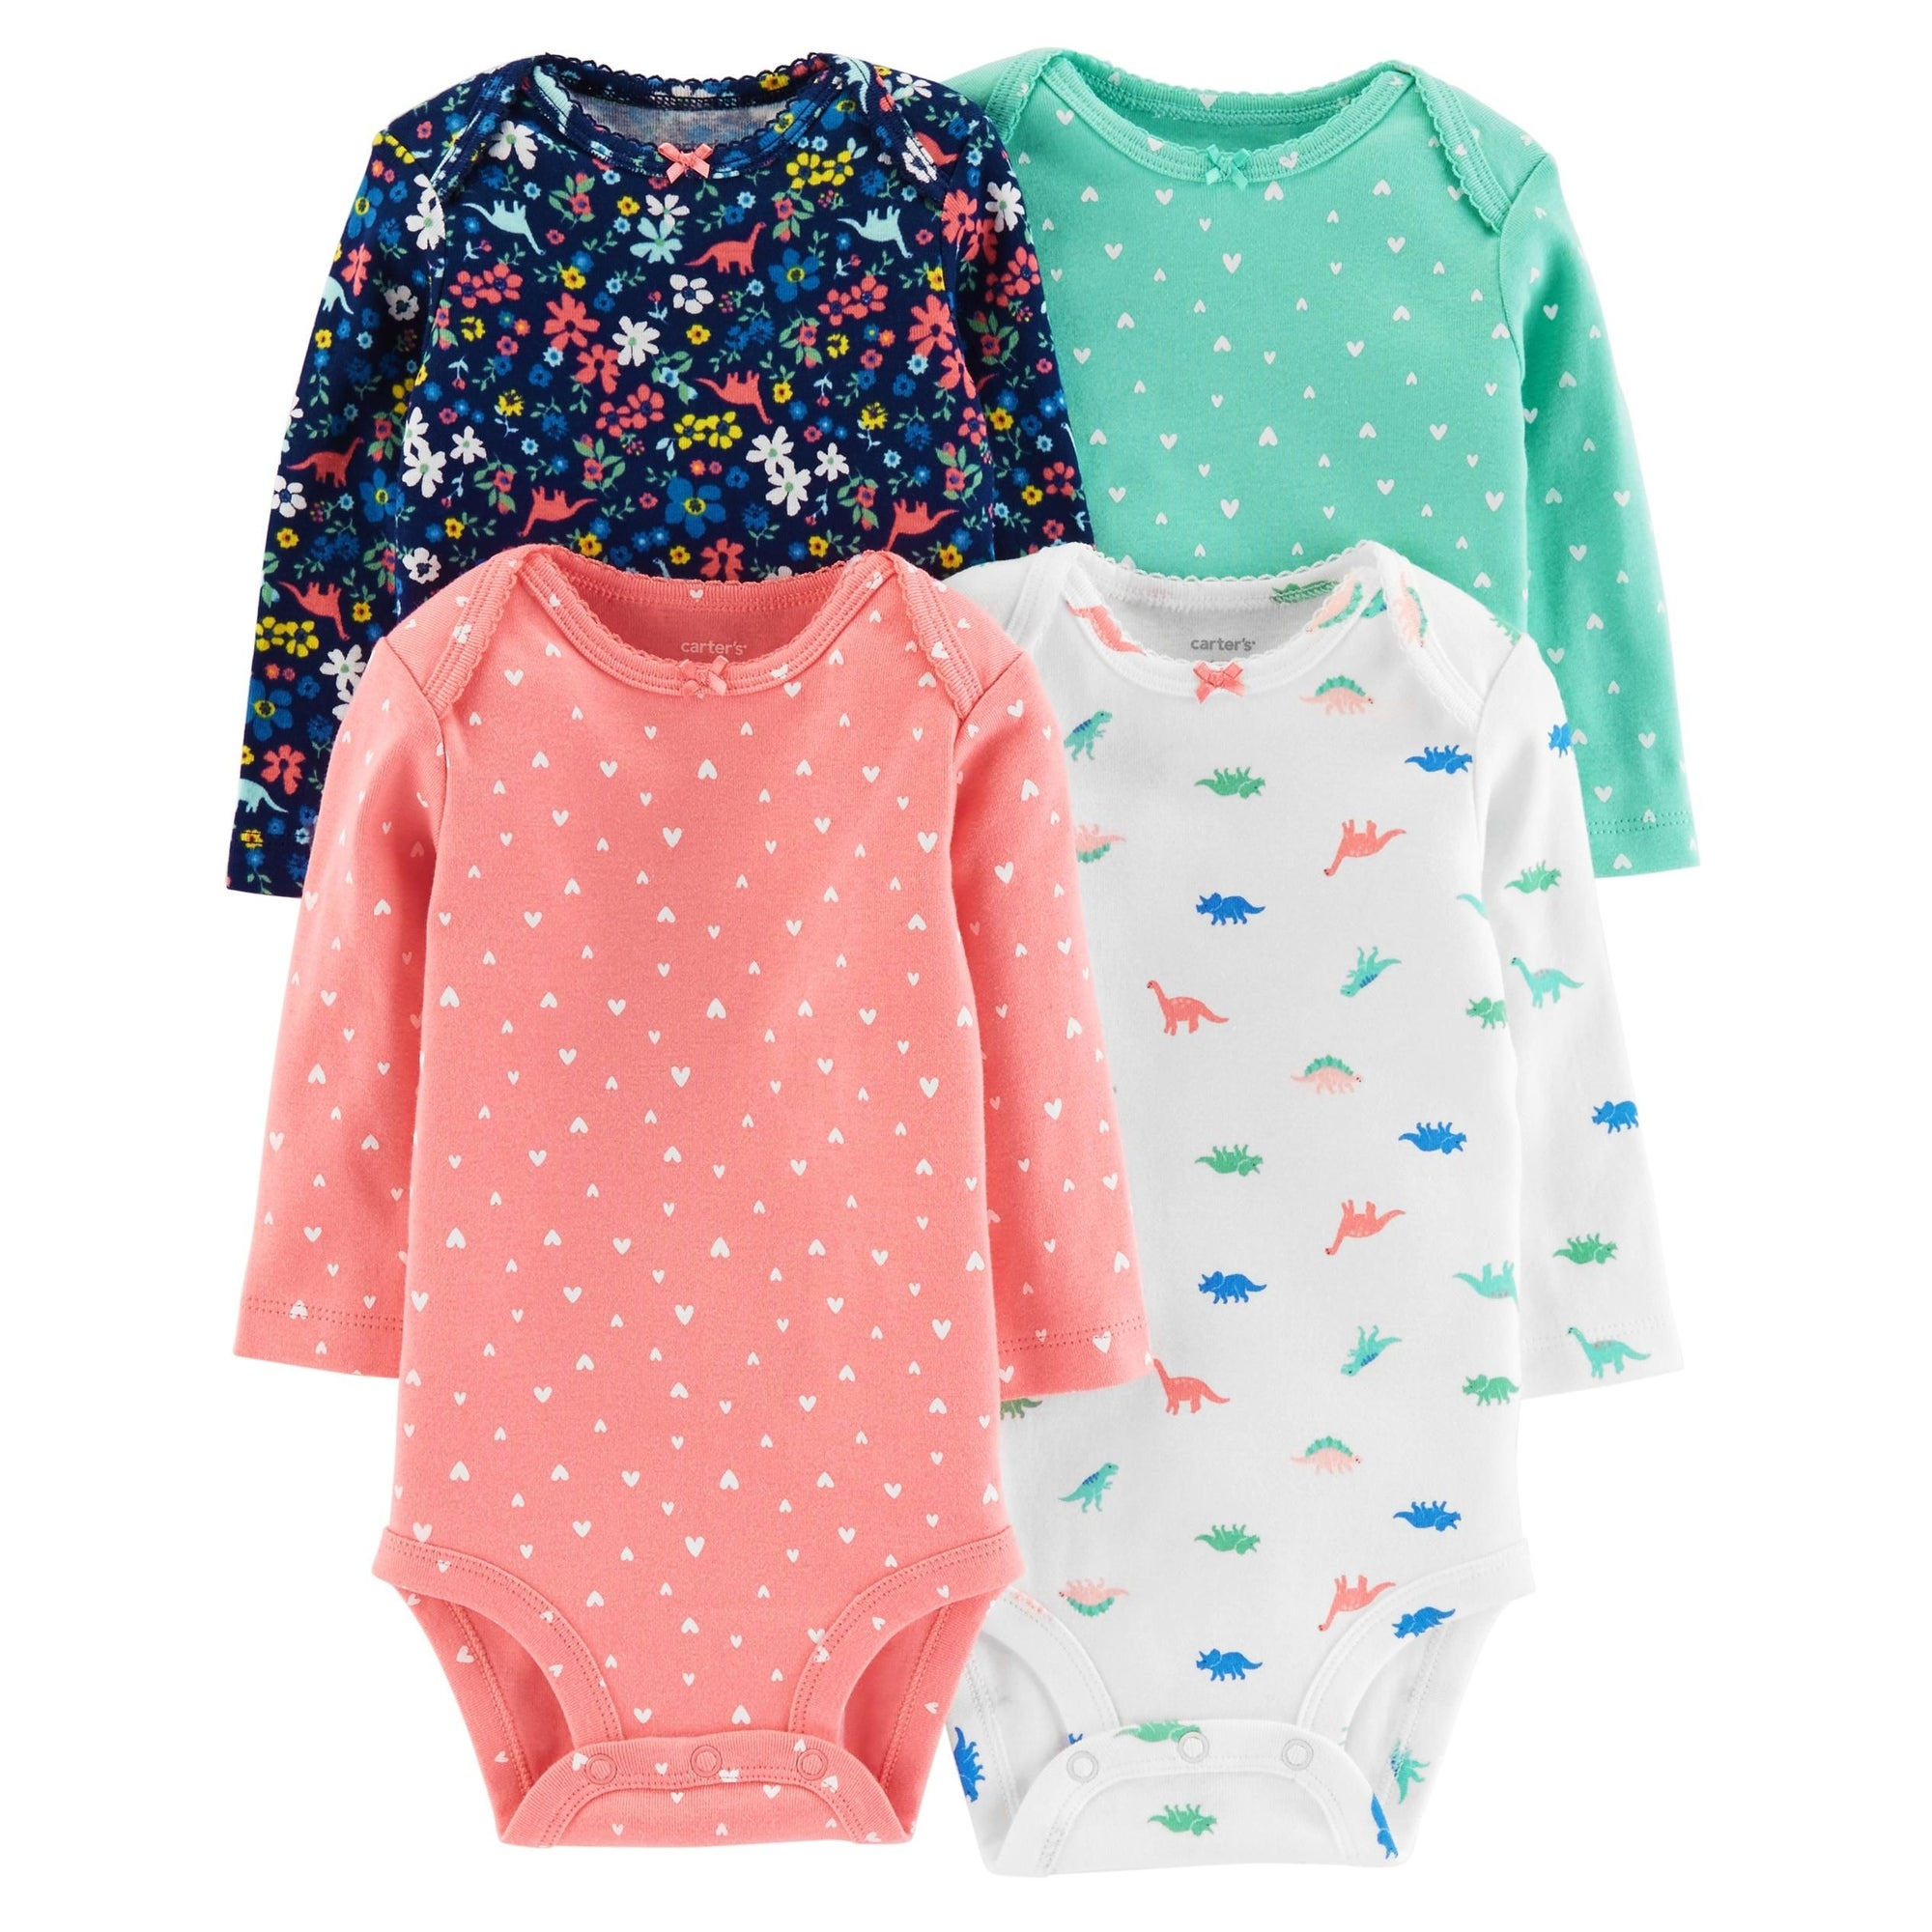 737727a596453 Shop Carter's Baby Girls' Dino Long Sleeve 4 Pack Bodysuits - Free Shipping  On Orders Over $45 - Overstock - 26518036